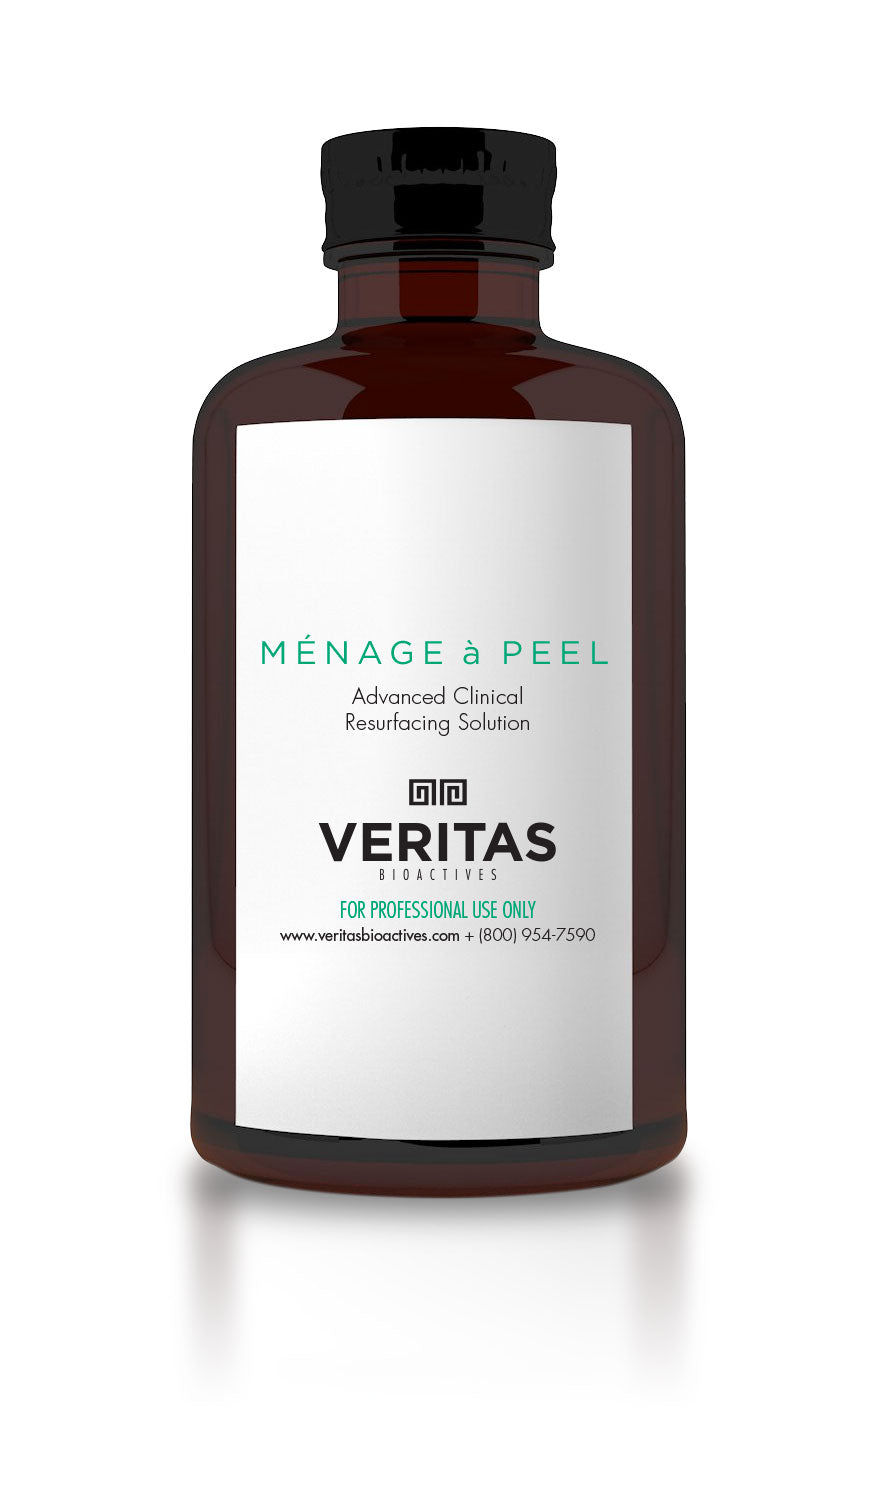 Menage-a-Peel (Advanced Clinical Resurfacing Solution)